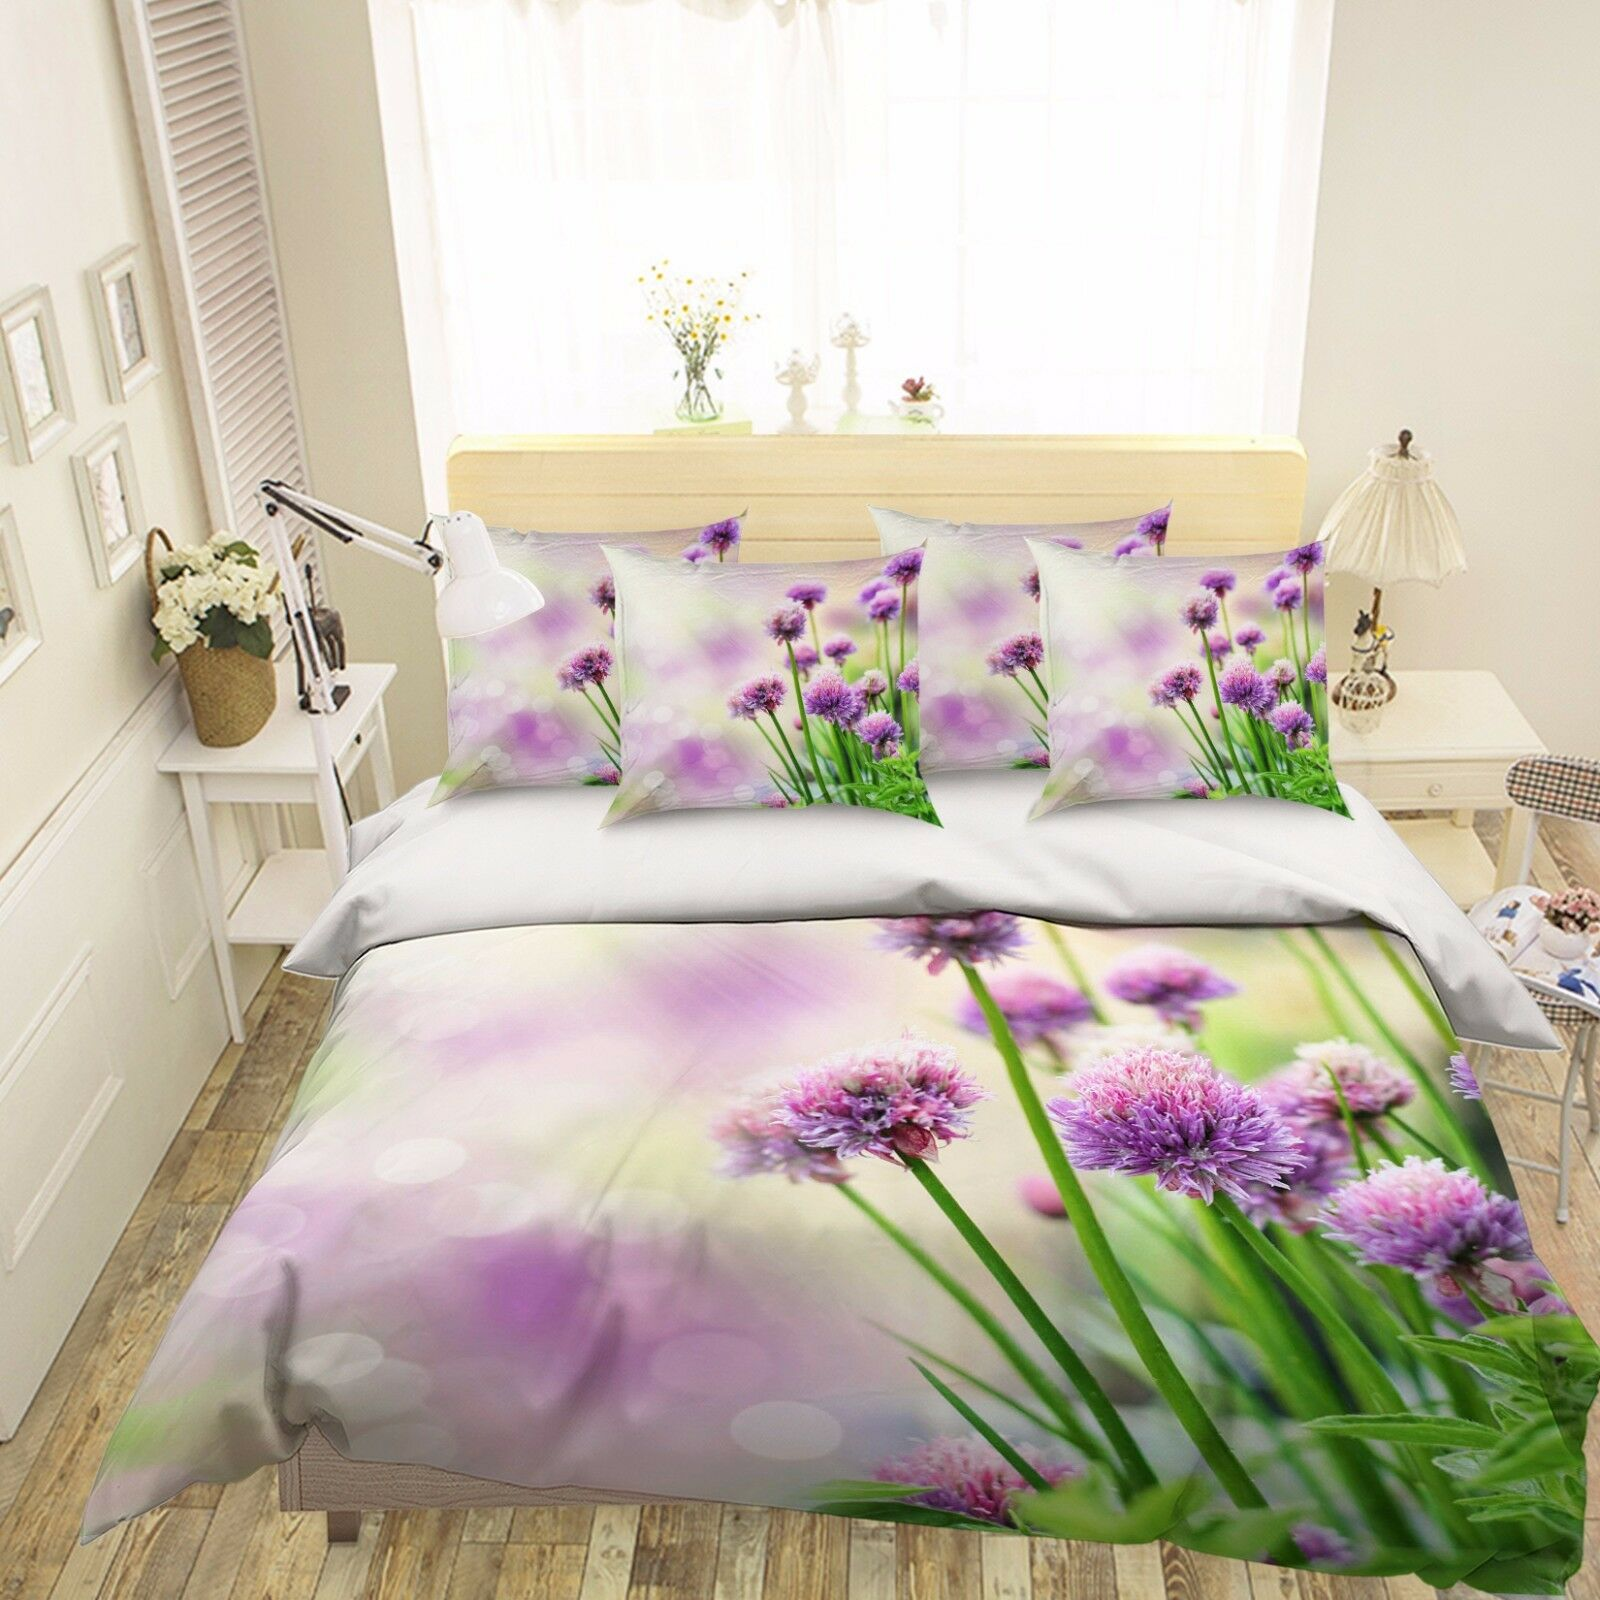 3D Wildflowers 1 Bed Pillowcases Quilt Duvet Cover Set Single Queen King Dimensione AU